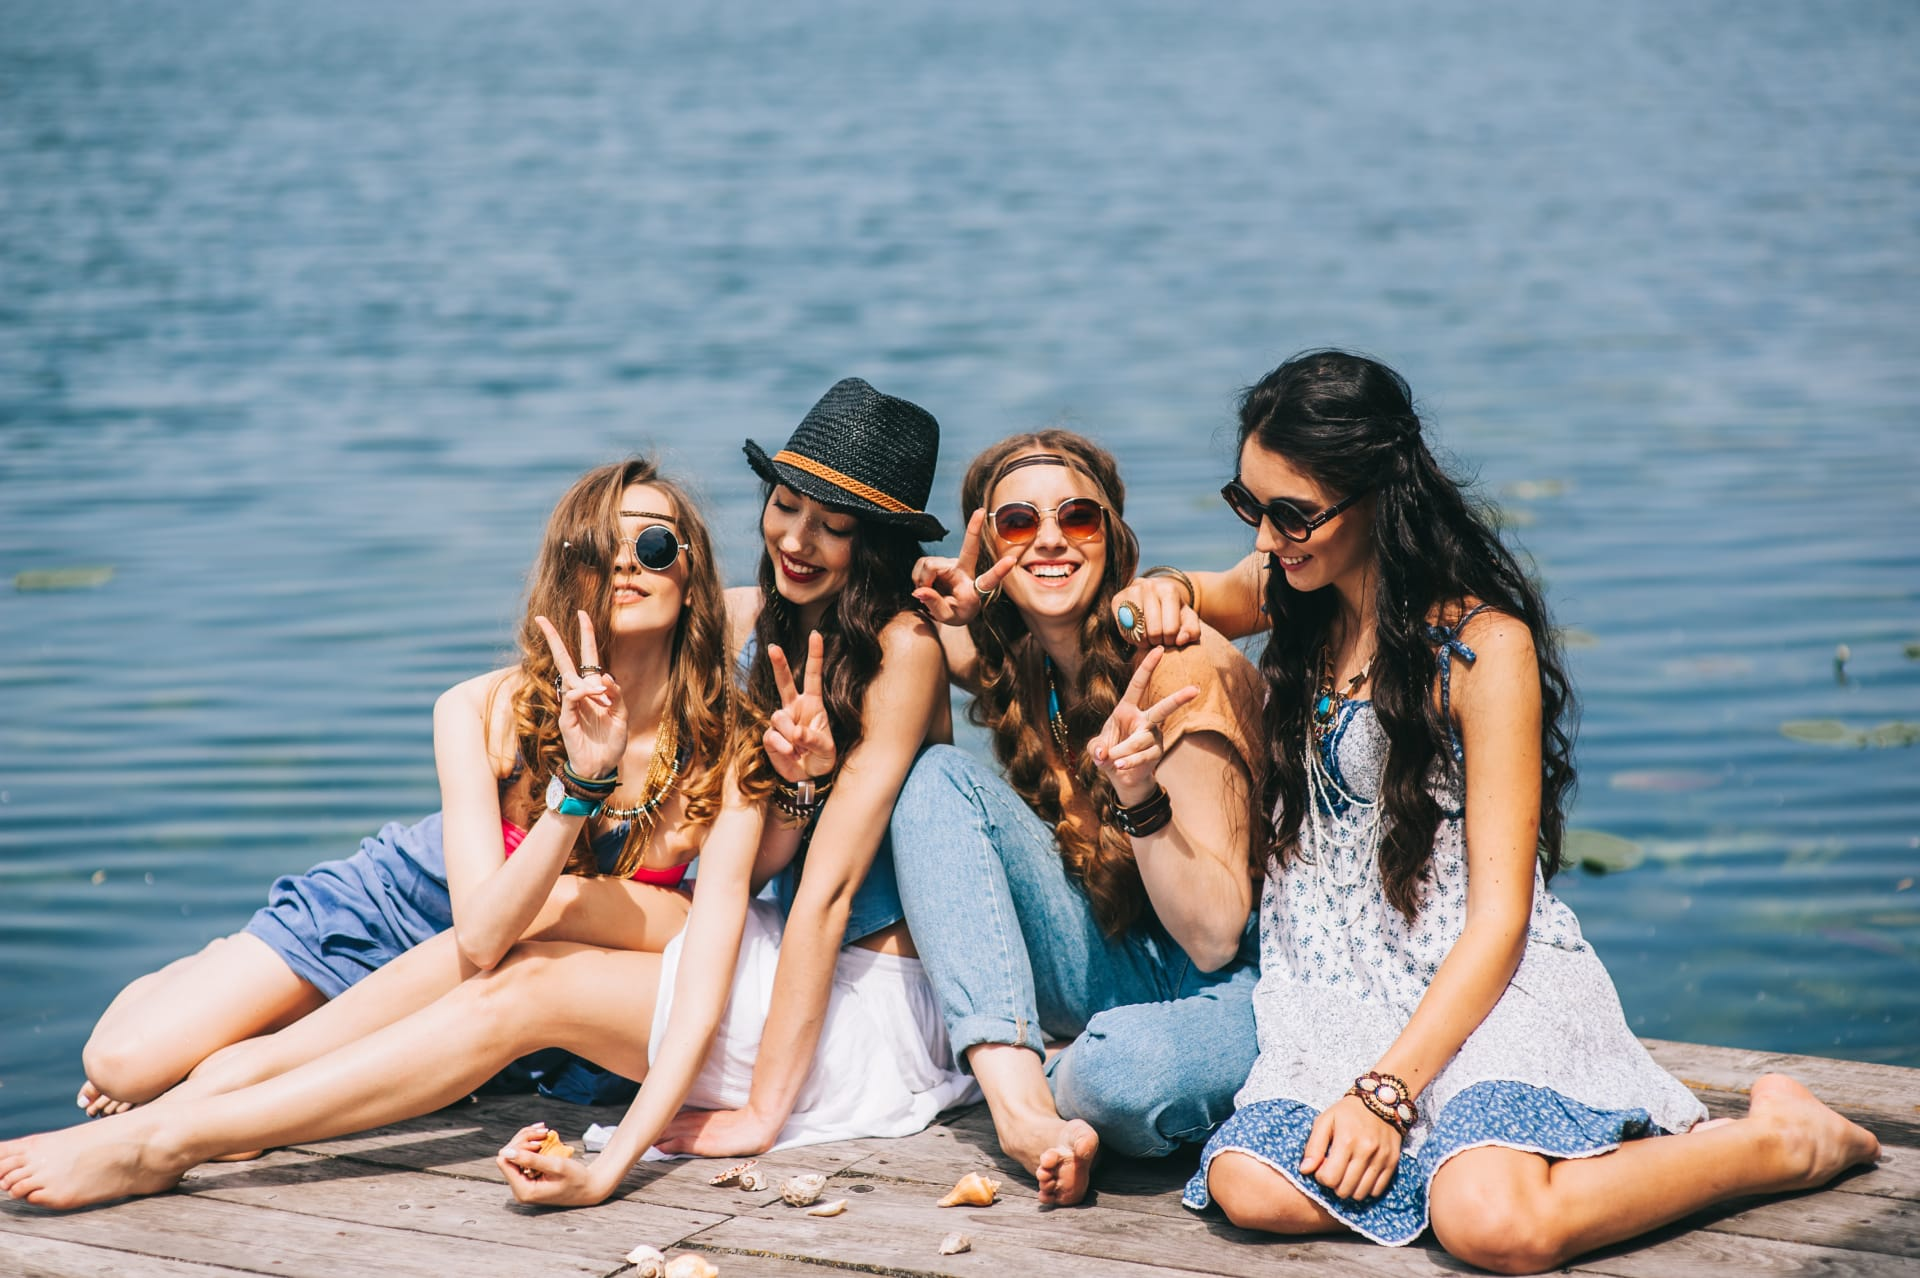 Four girl sitting on a dock and smiling